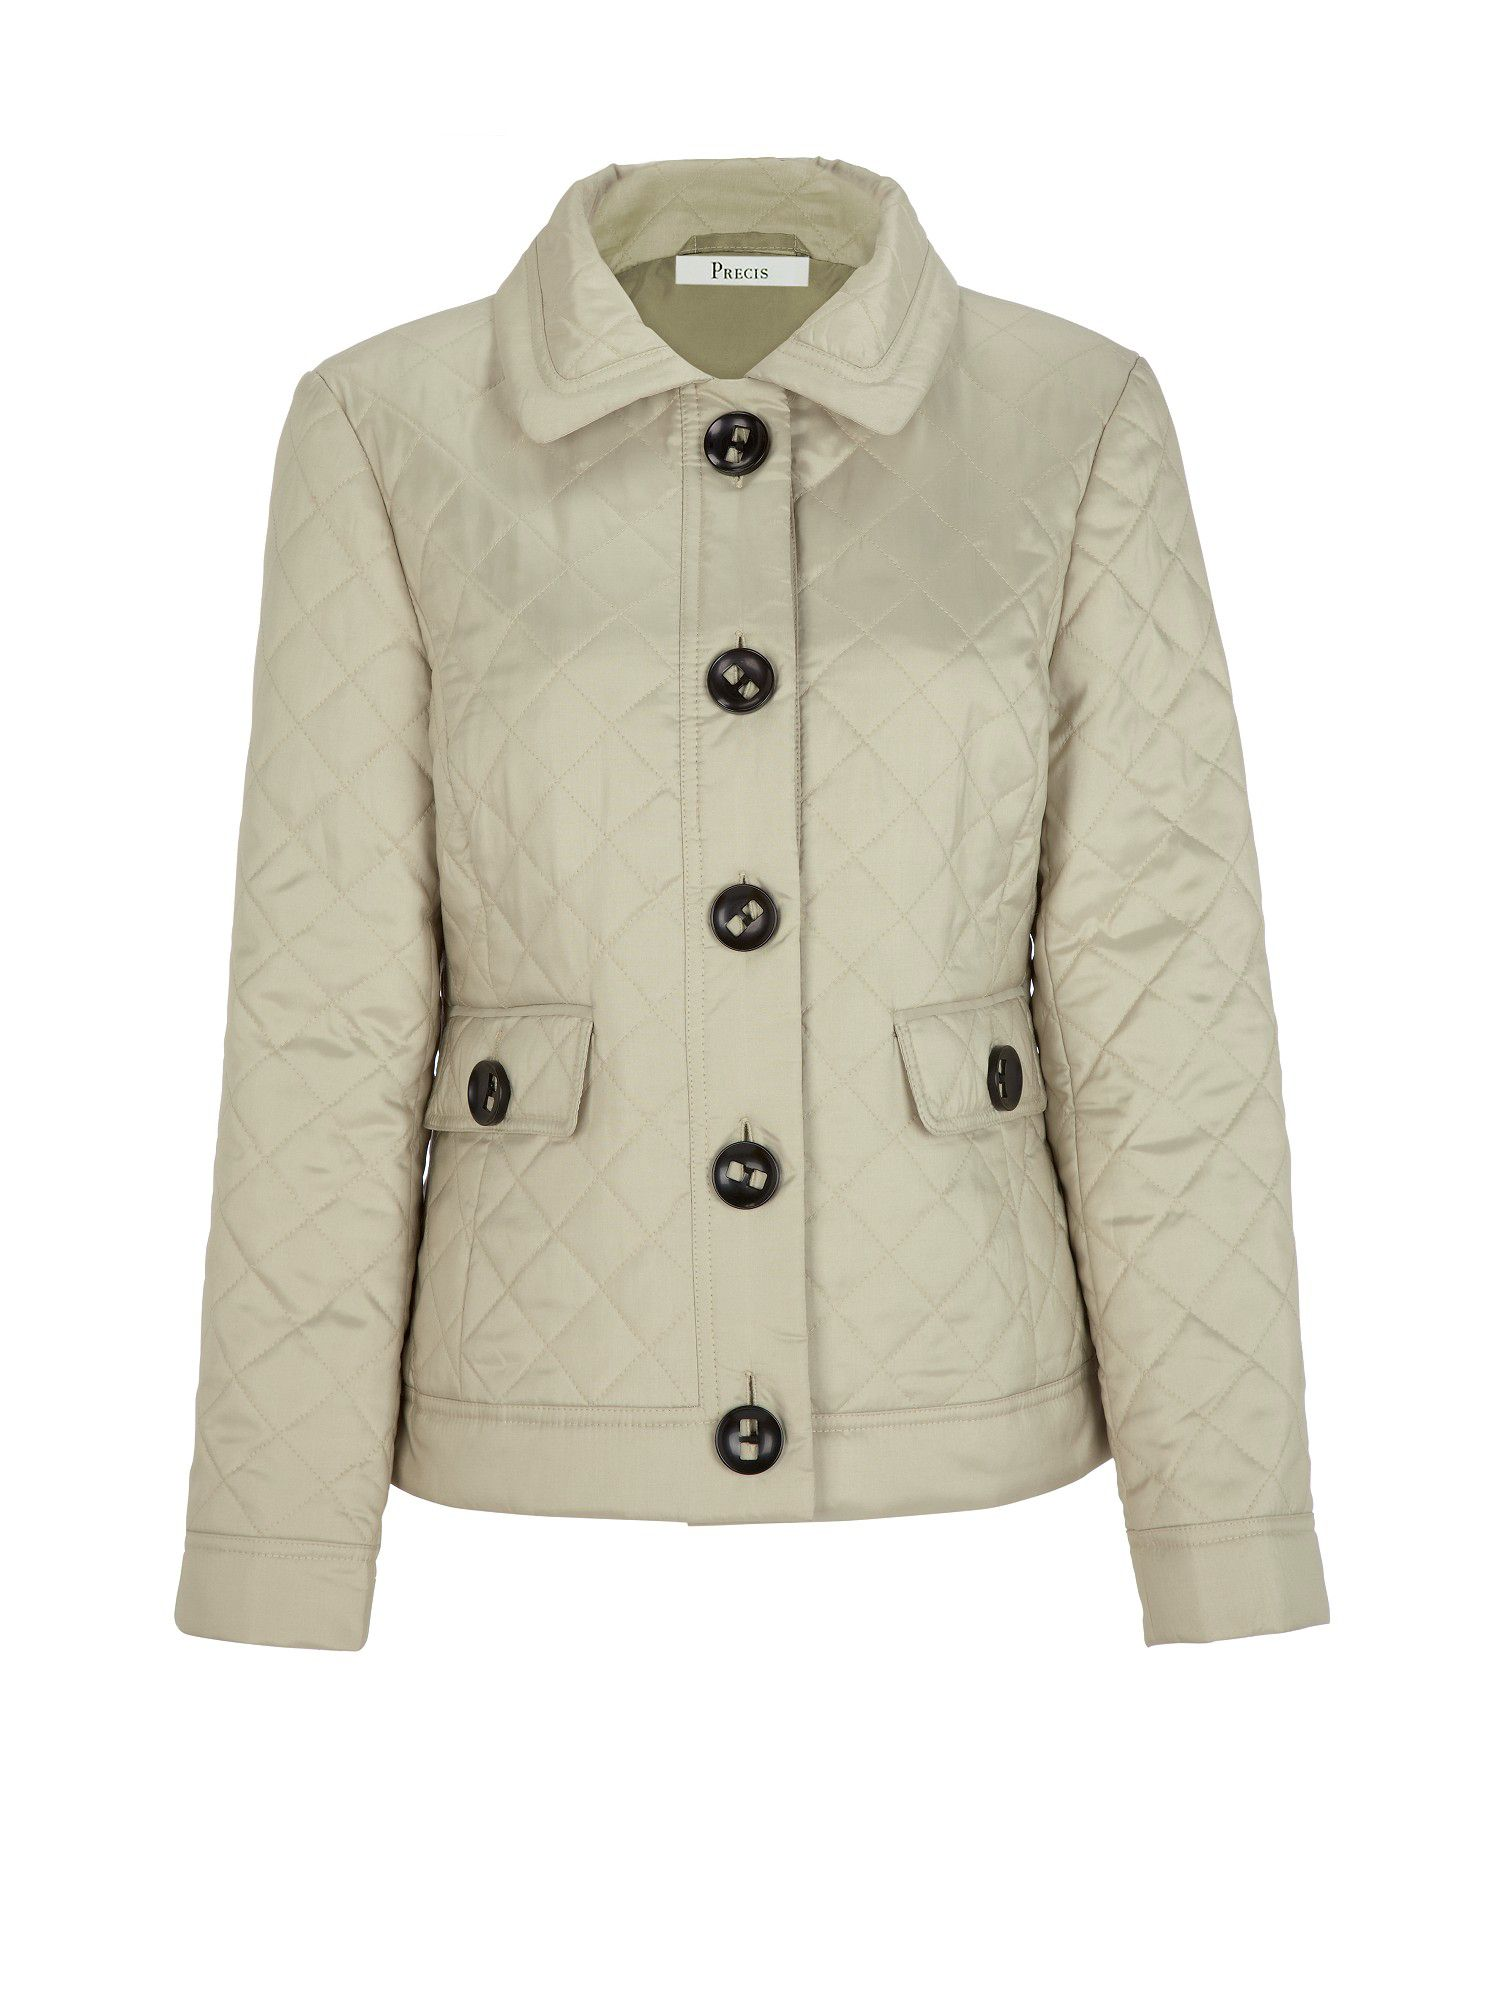 Stone diamond quilted jacket